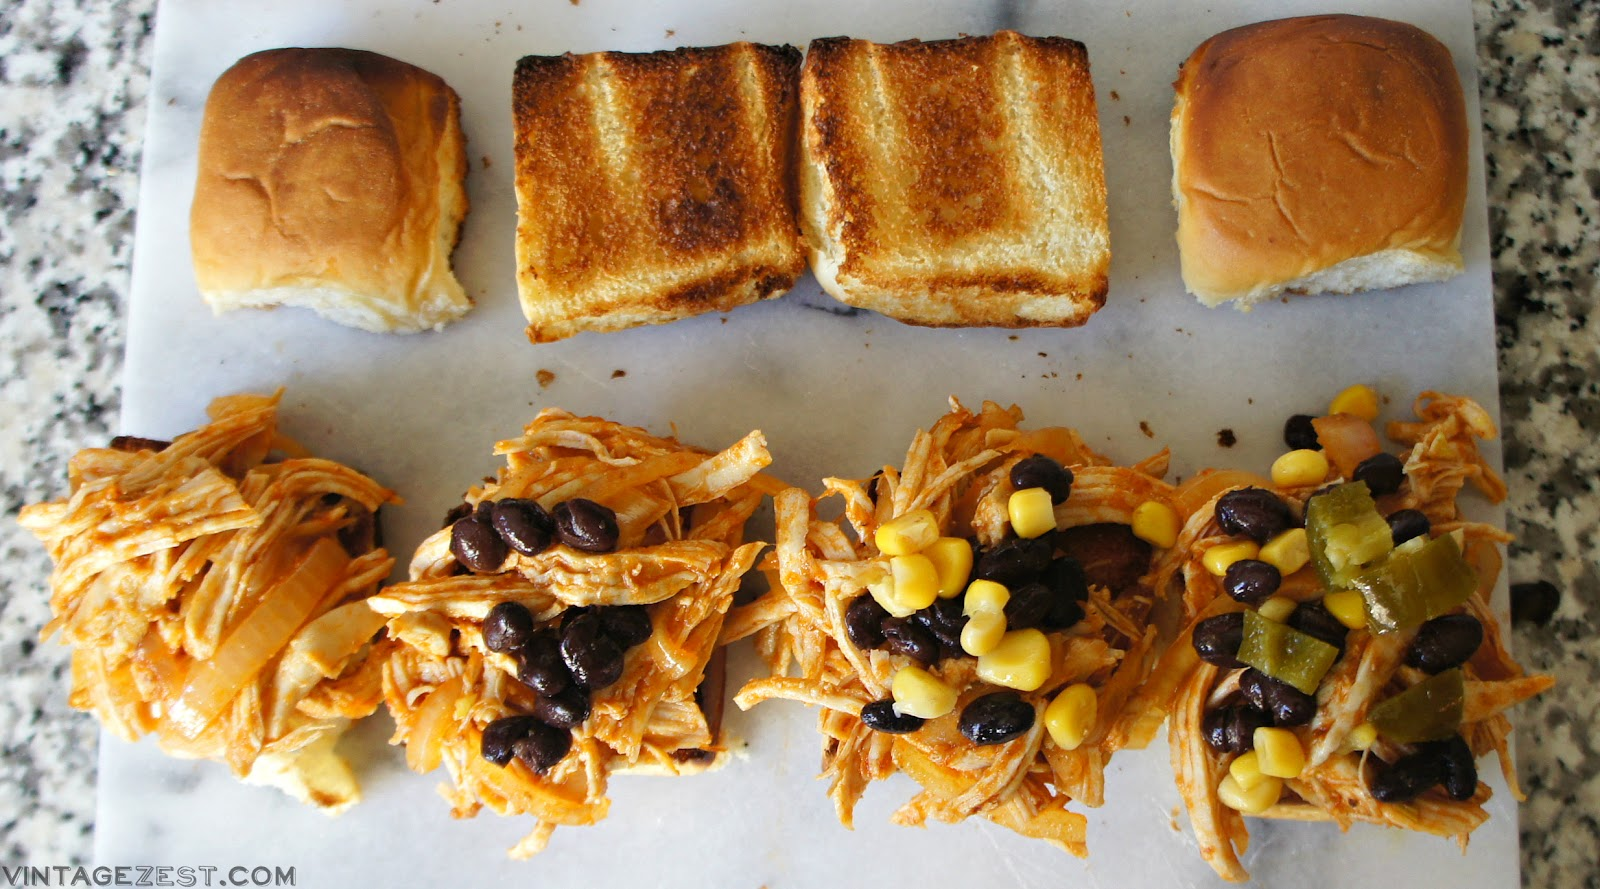 Spicy Chipotle Chicken Sliders recipe on Diane's Vintage Zest!  #ad #VivaLaMorena